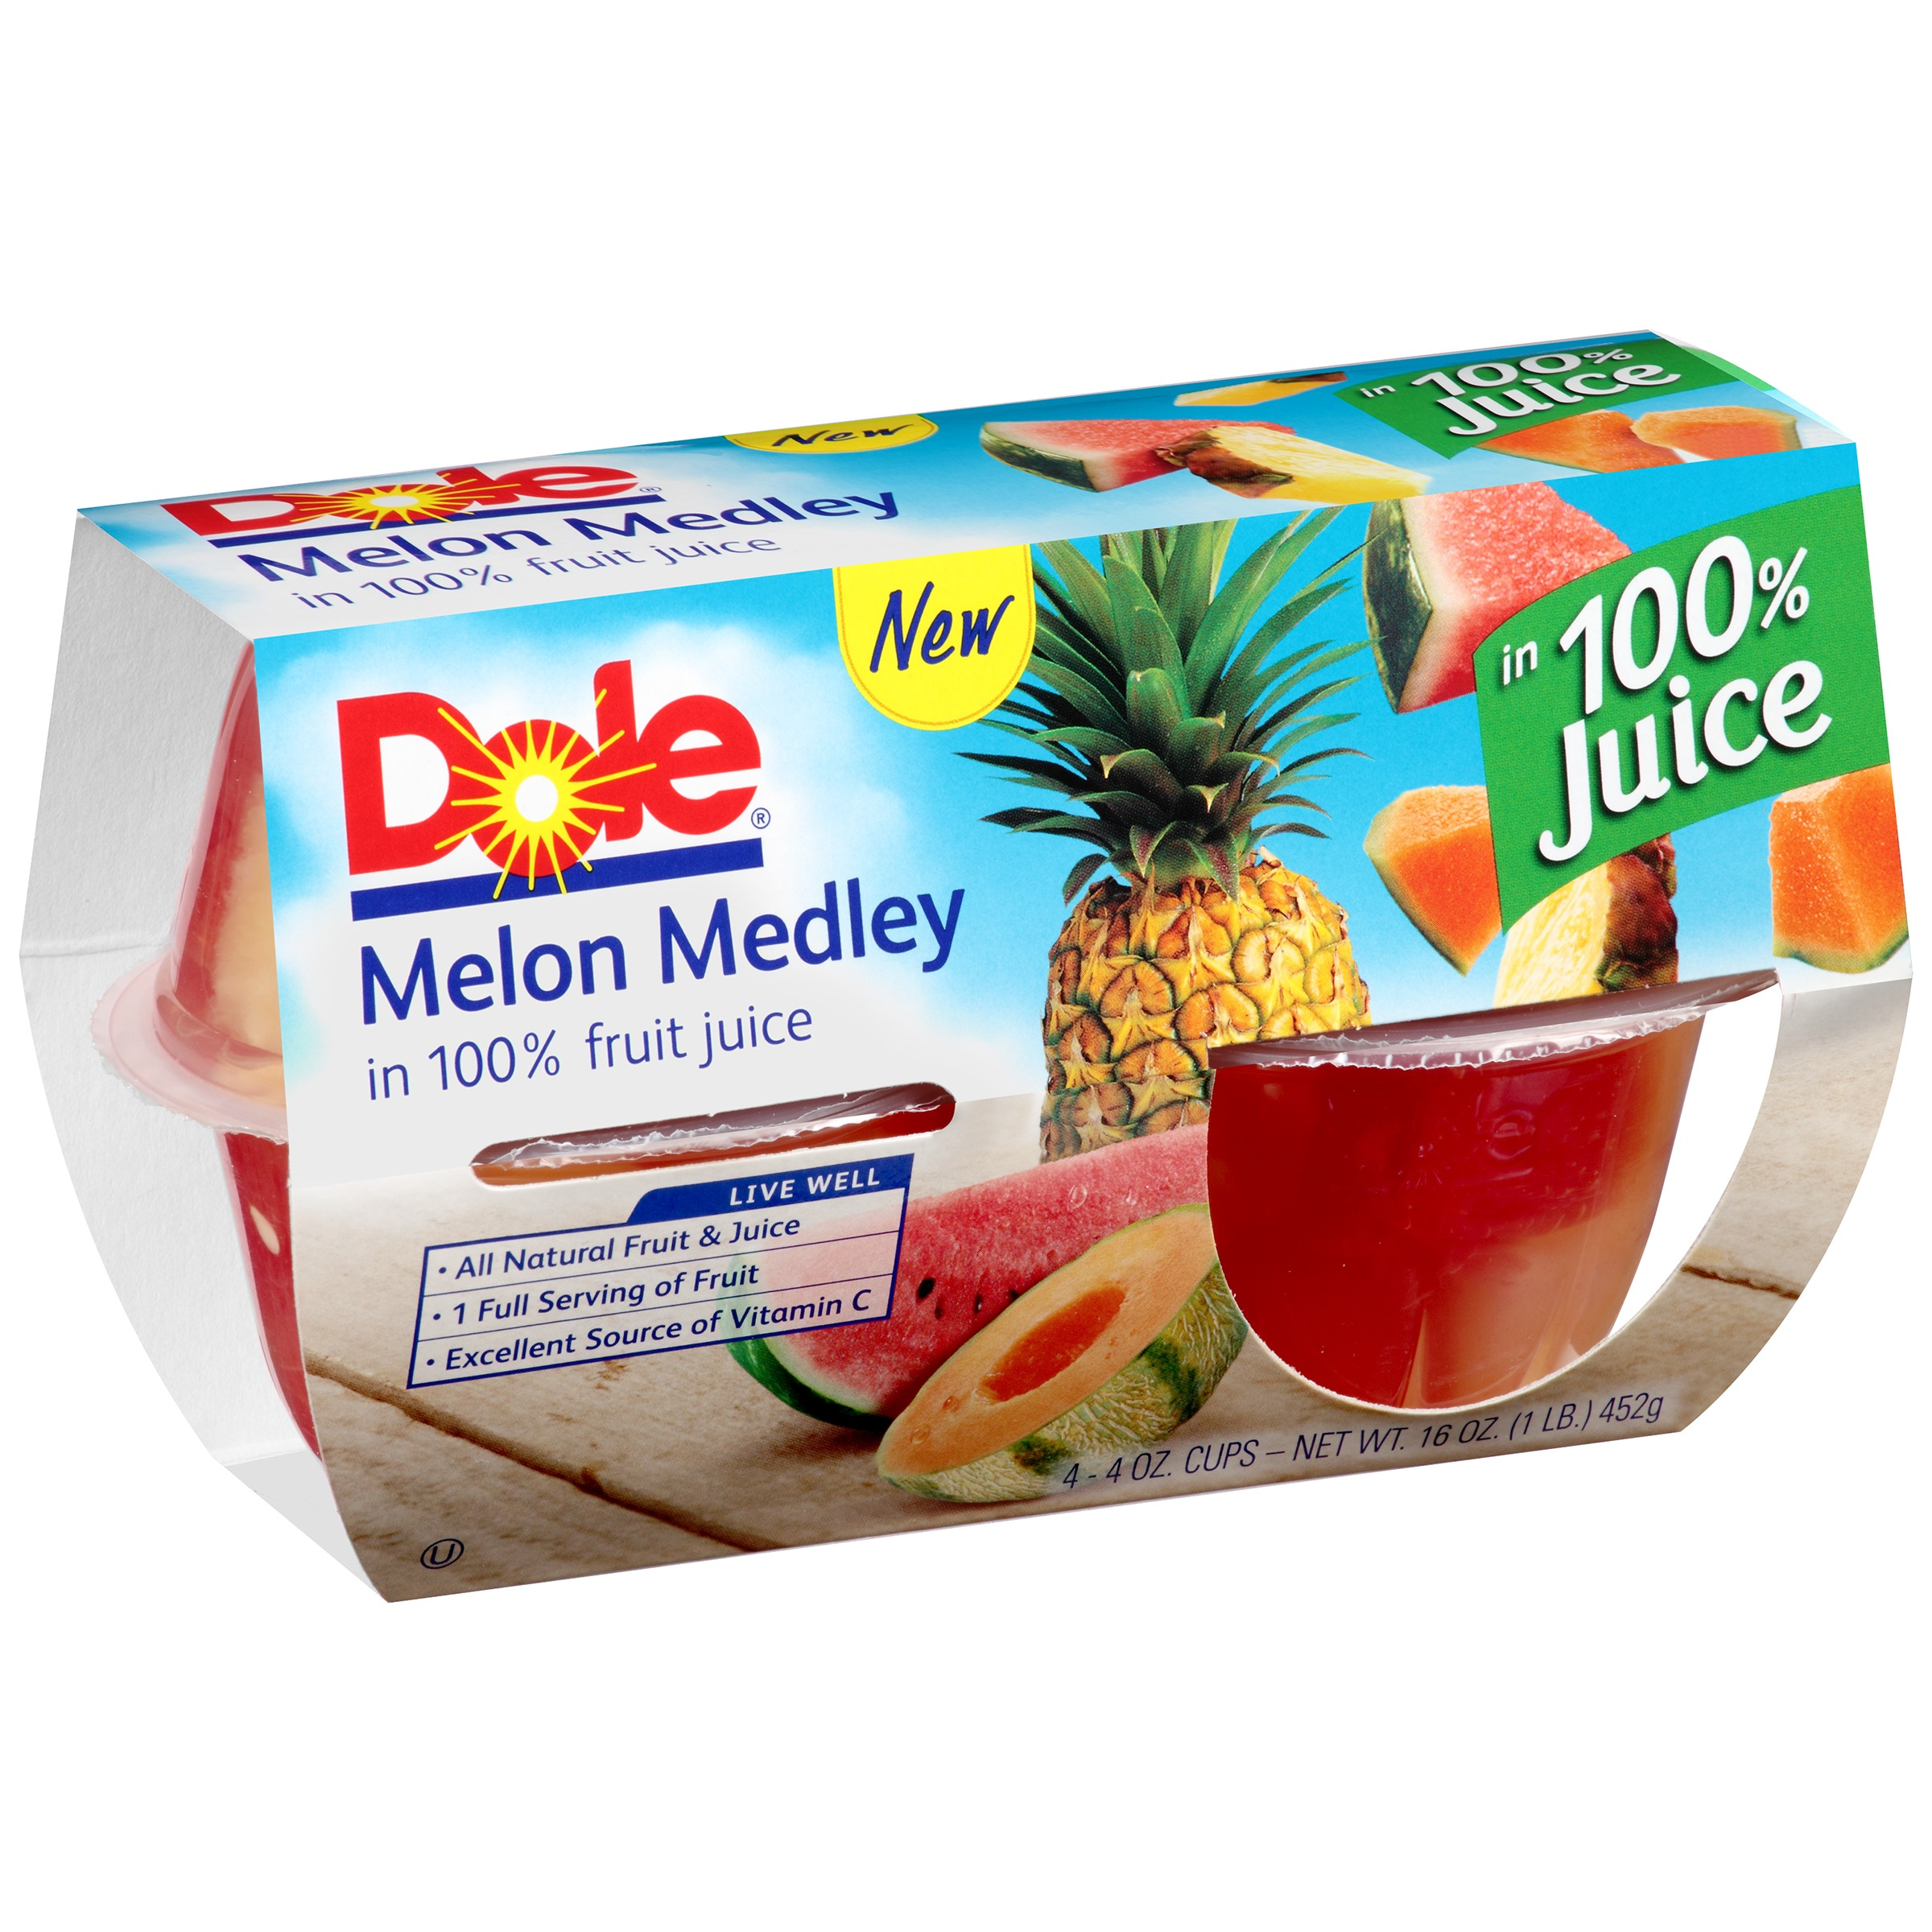 Dole�� Melon Medley in 100% Fruit Juice 4-4 oz. Cups